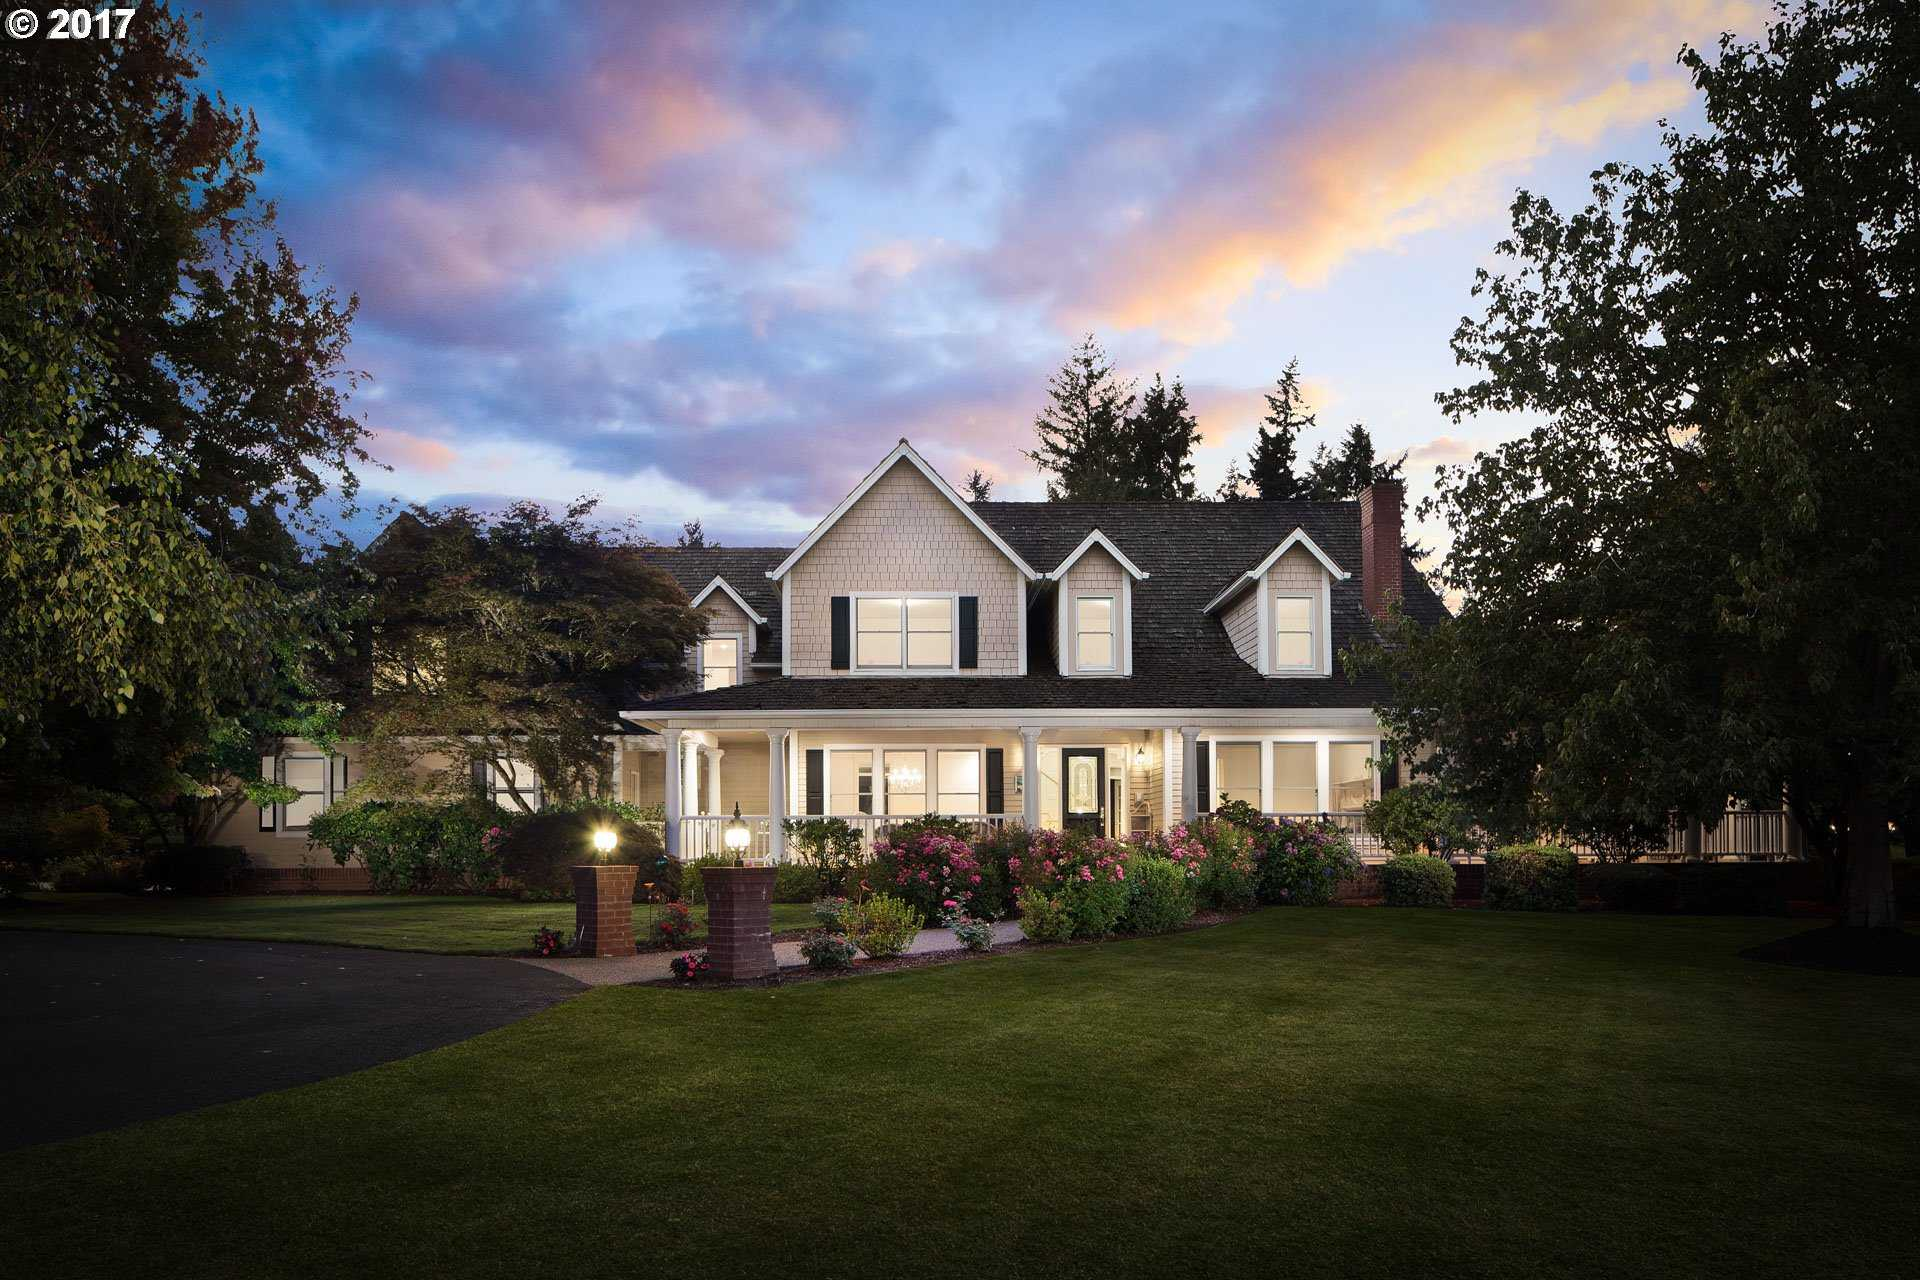 $1,597,496 - 5Br/6Ba -  for Sale in Wilhelm Farms, Tualatin